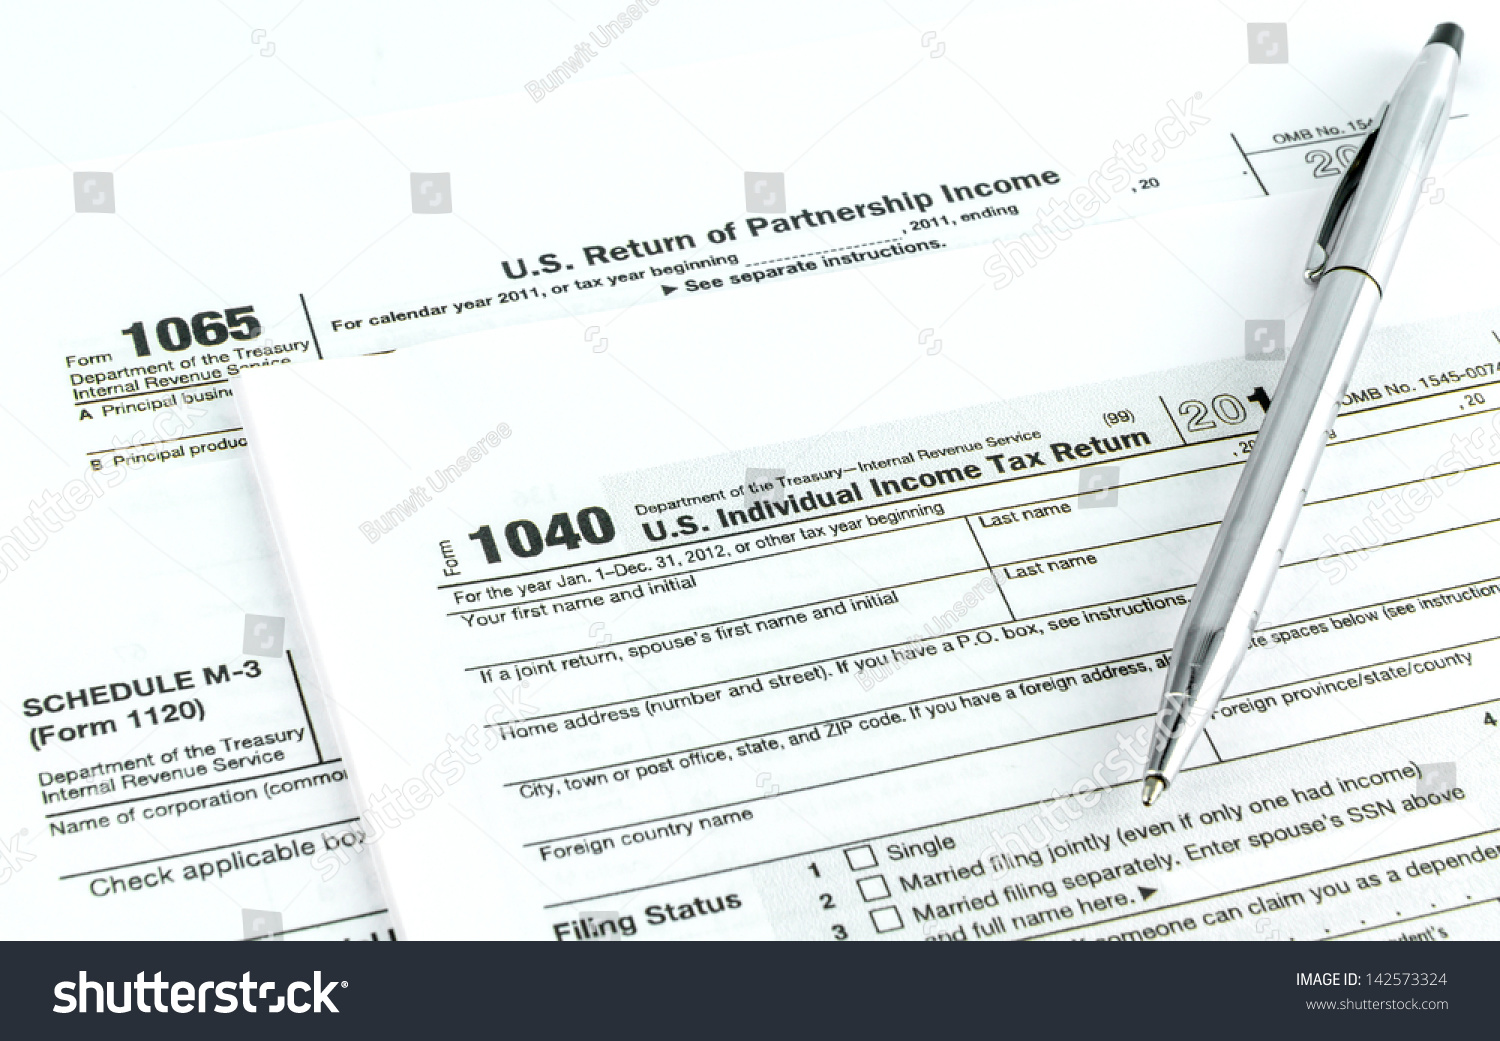 Filing federal income tax return | EZ Canvas